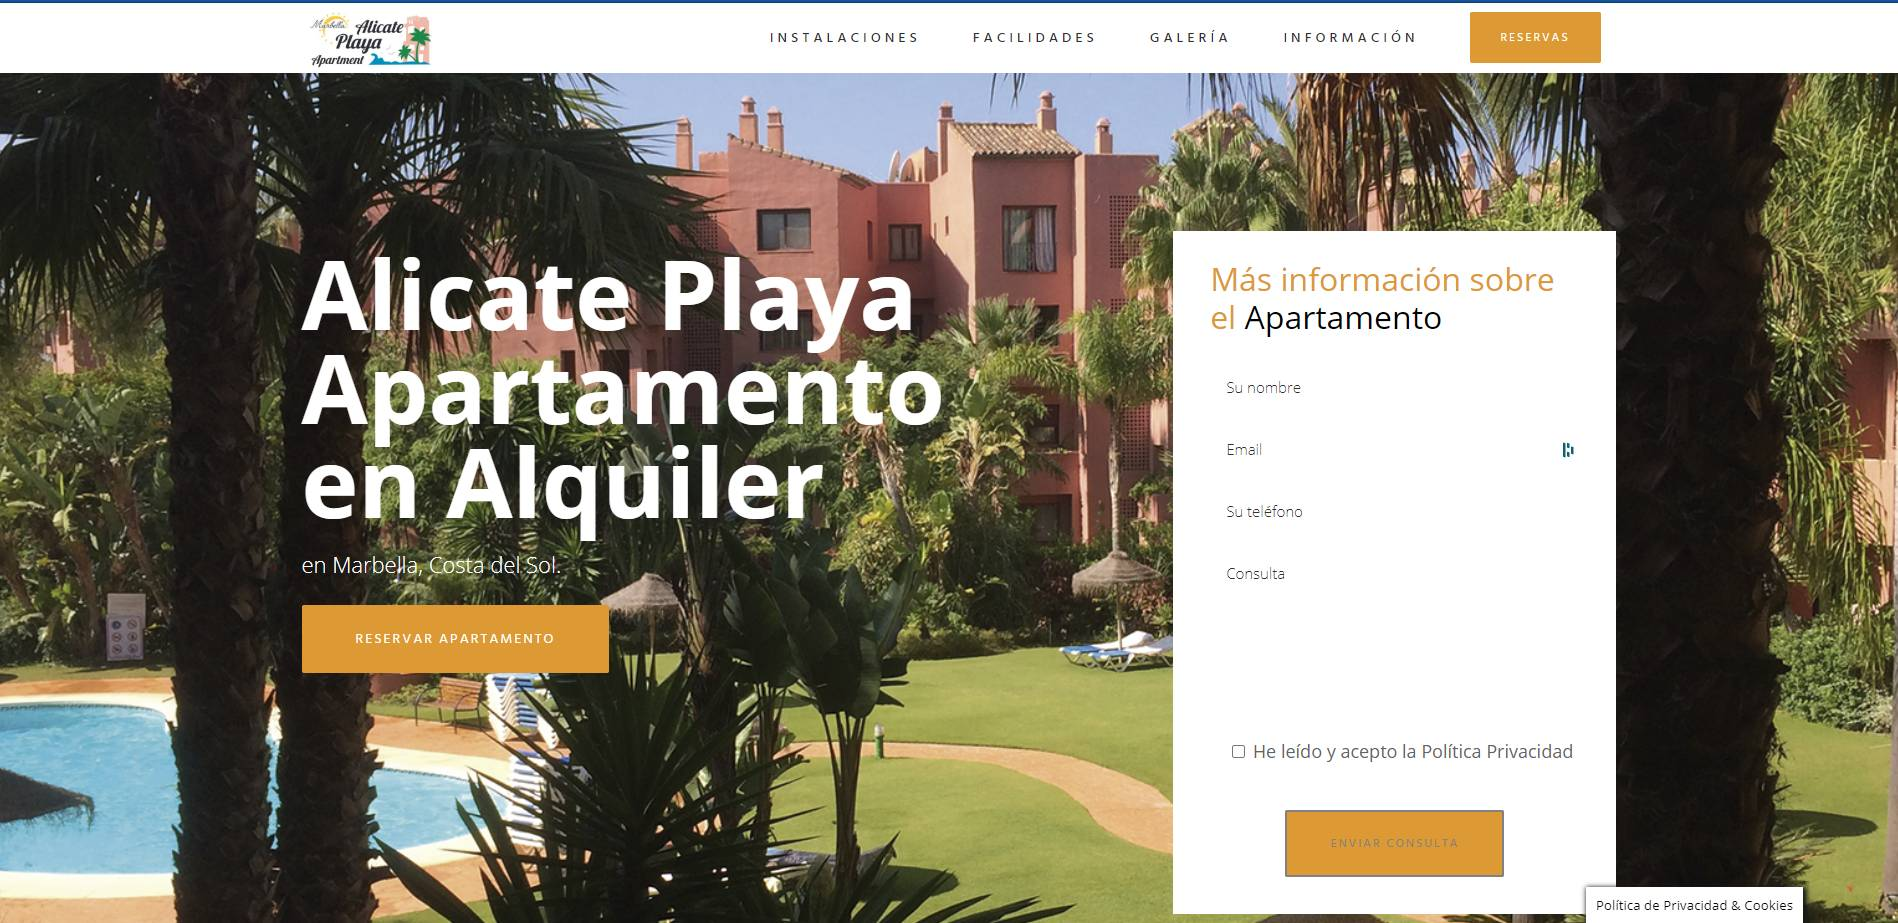 Alicate Playa Apartamento